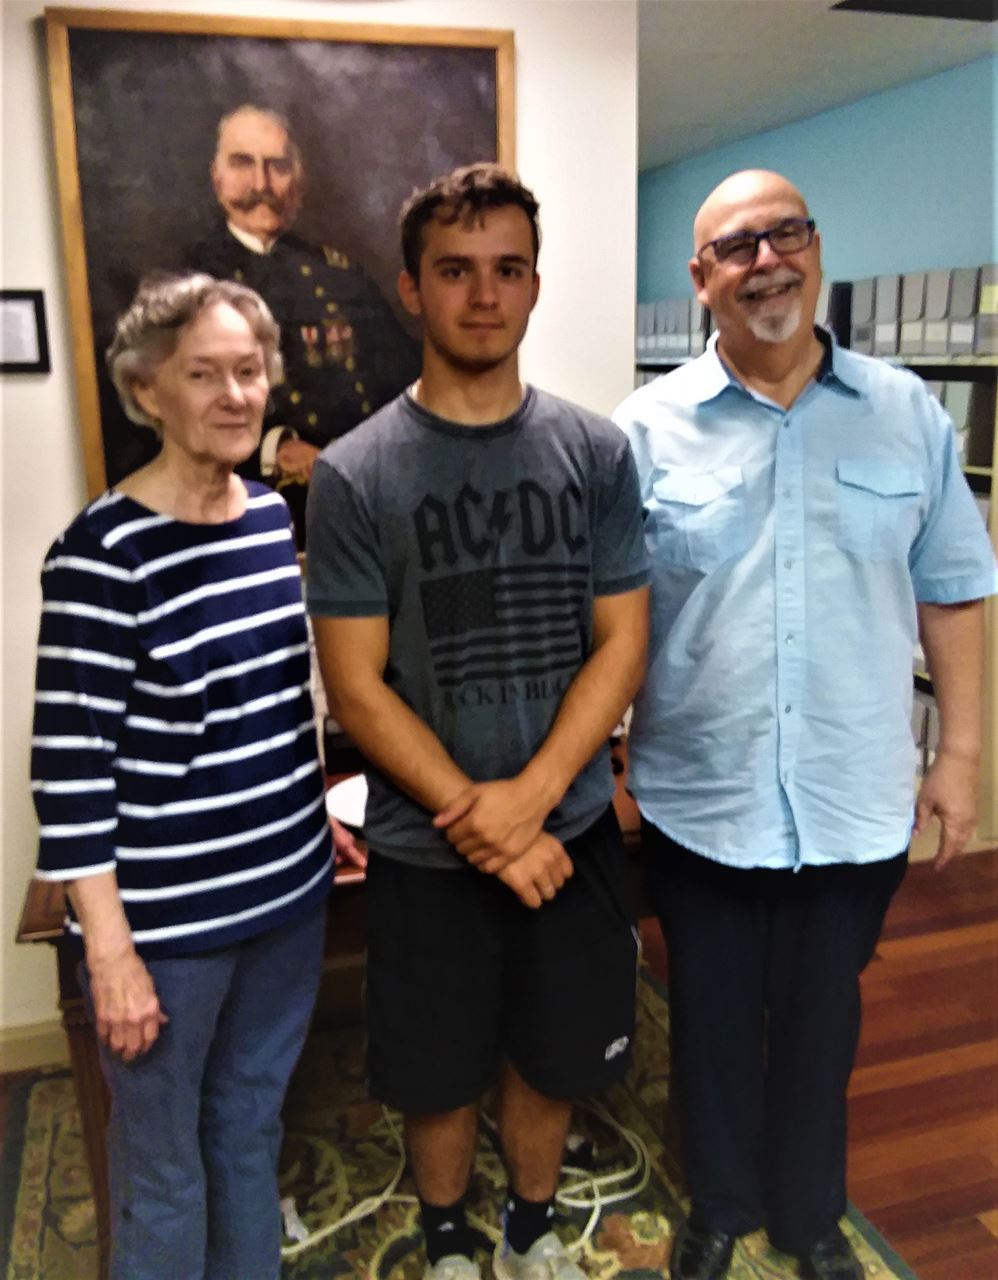 Curator, Mary Frazier stands with Intern, Maximilian Wagner and Supervisory Director, Robert Harris